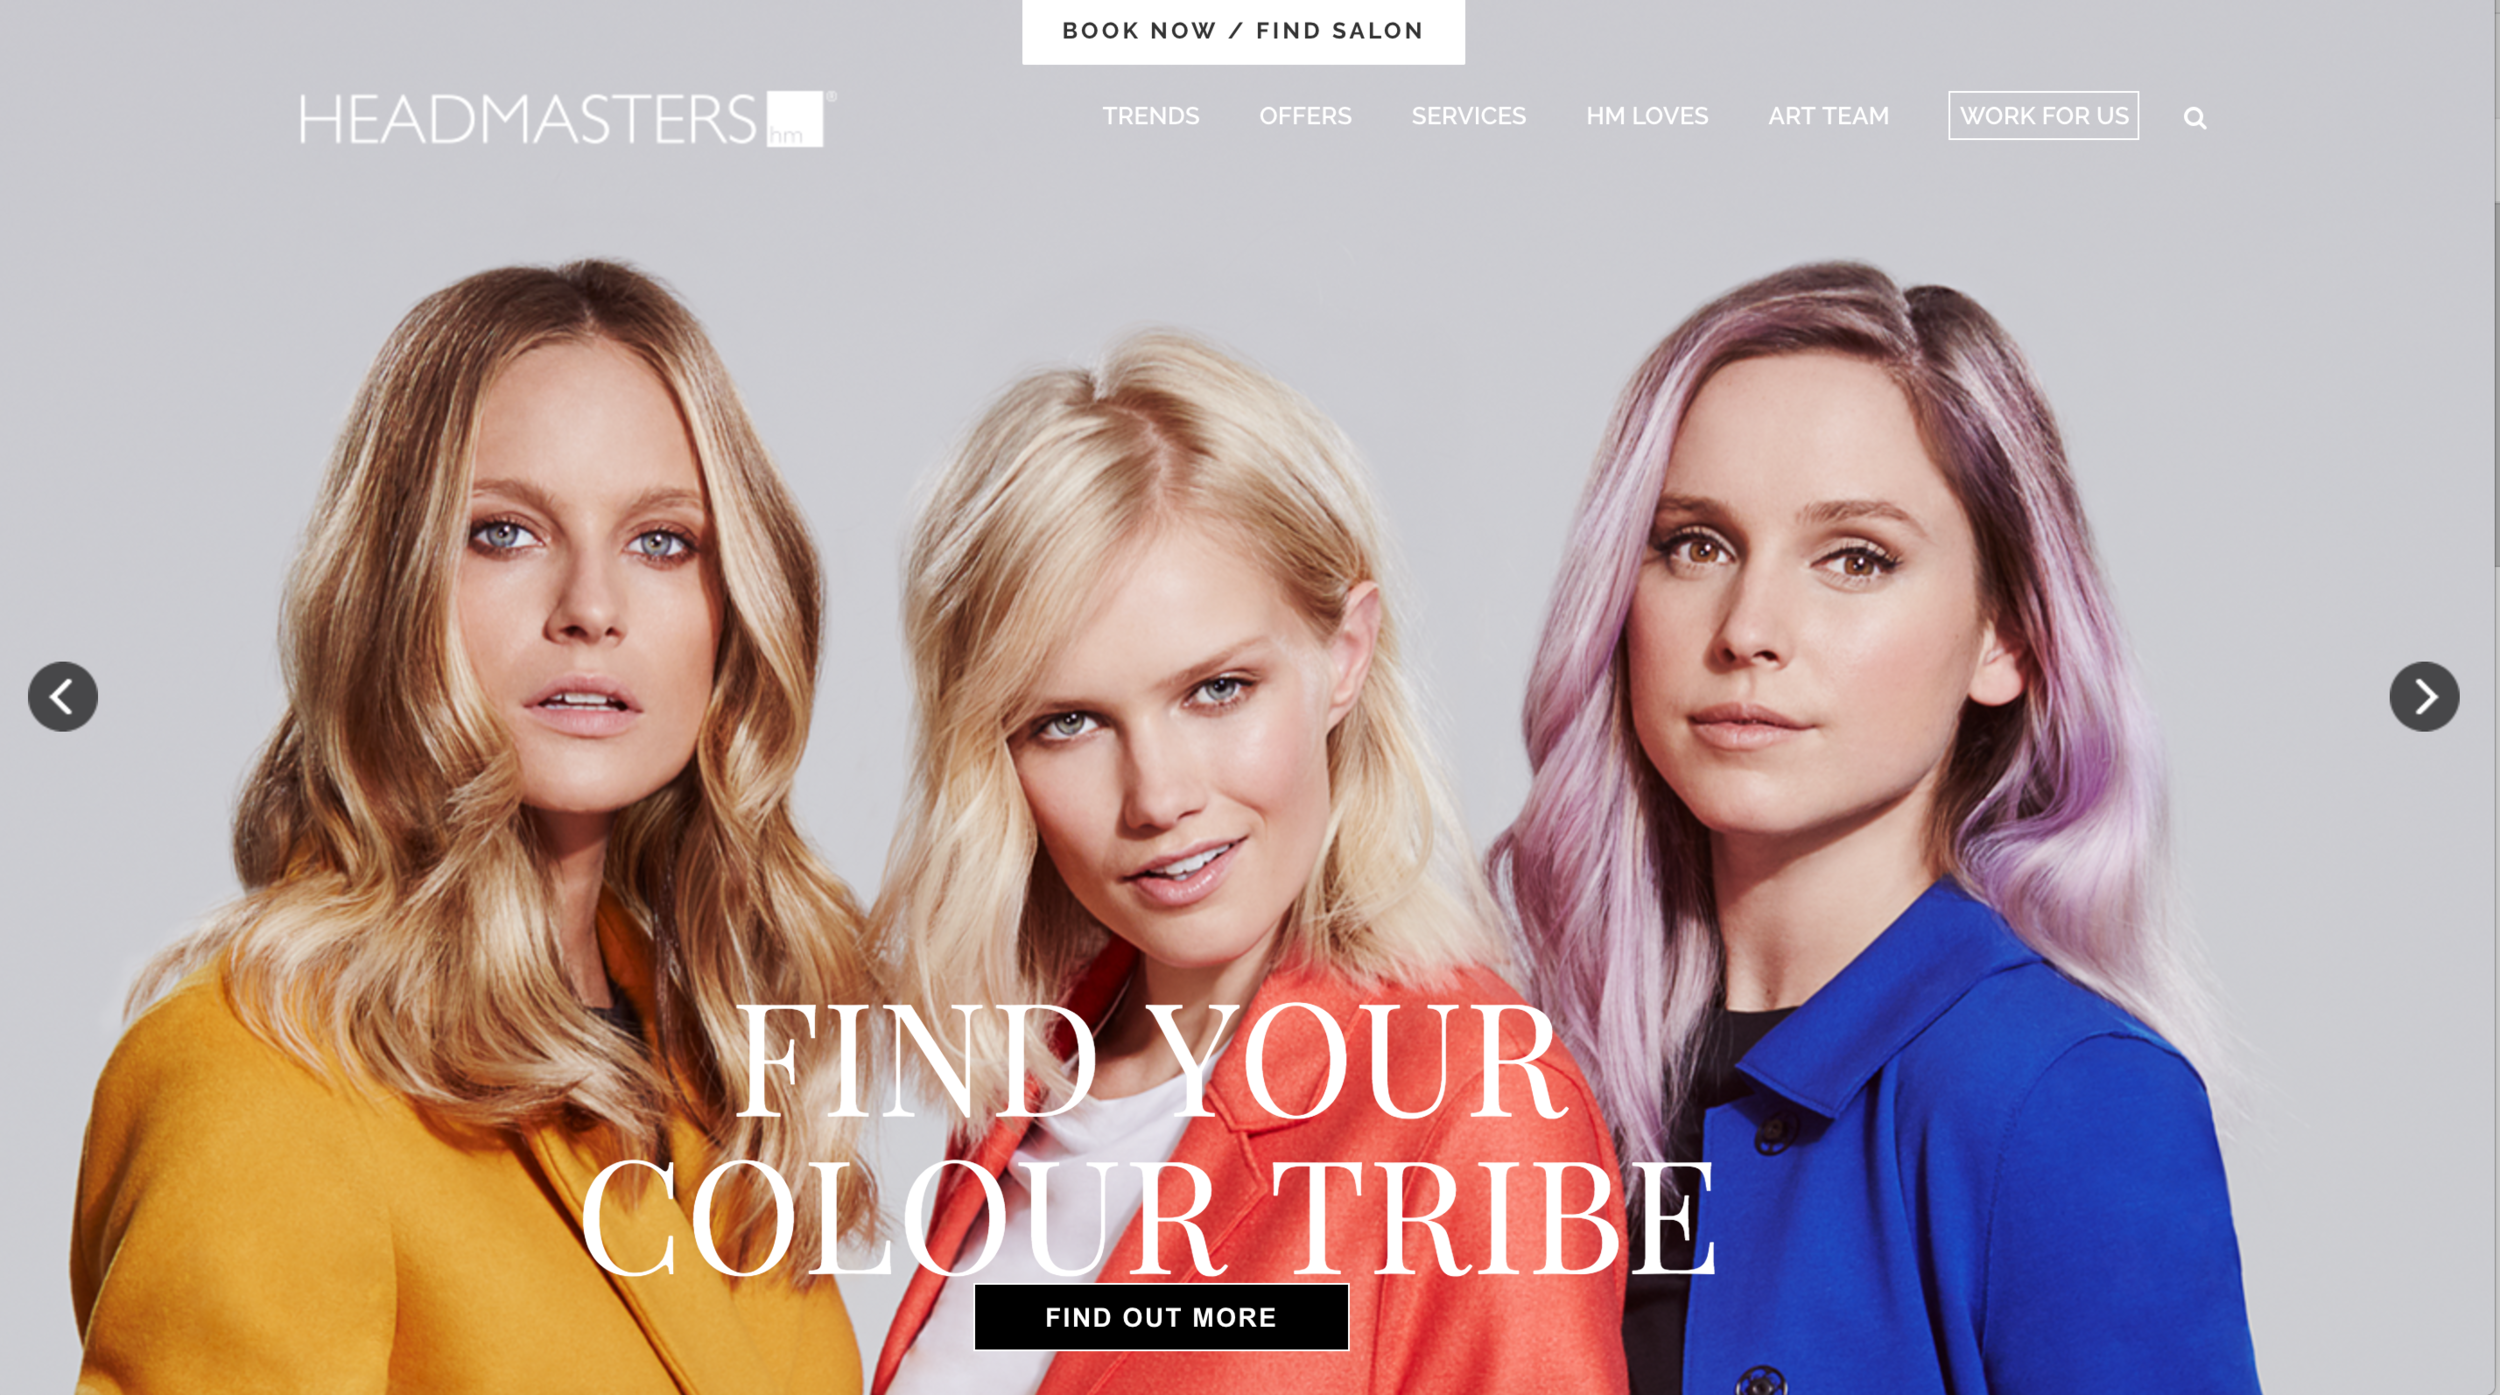 www.headmasters.com/blog/colour-tribe/